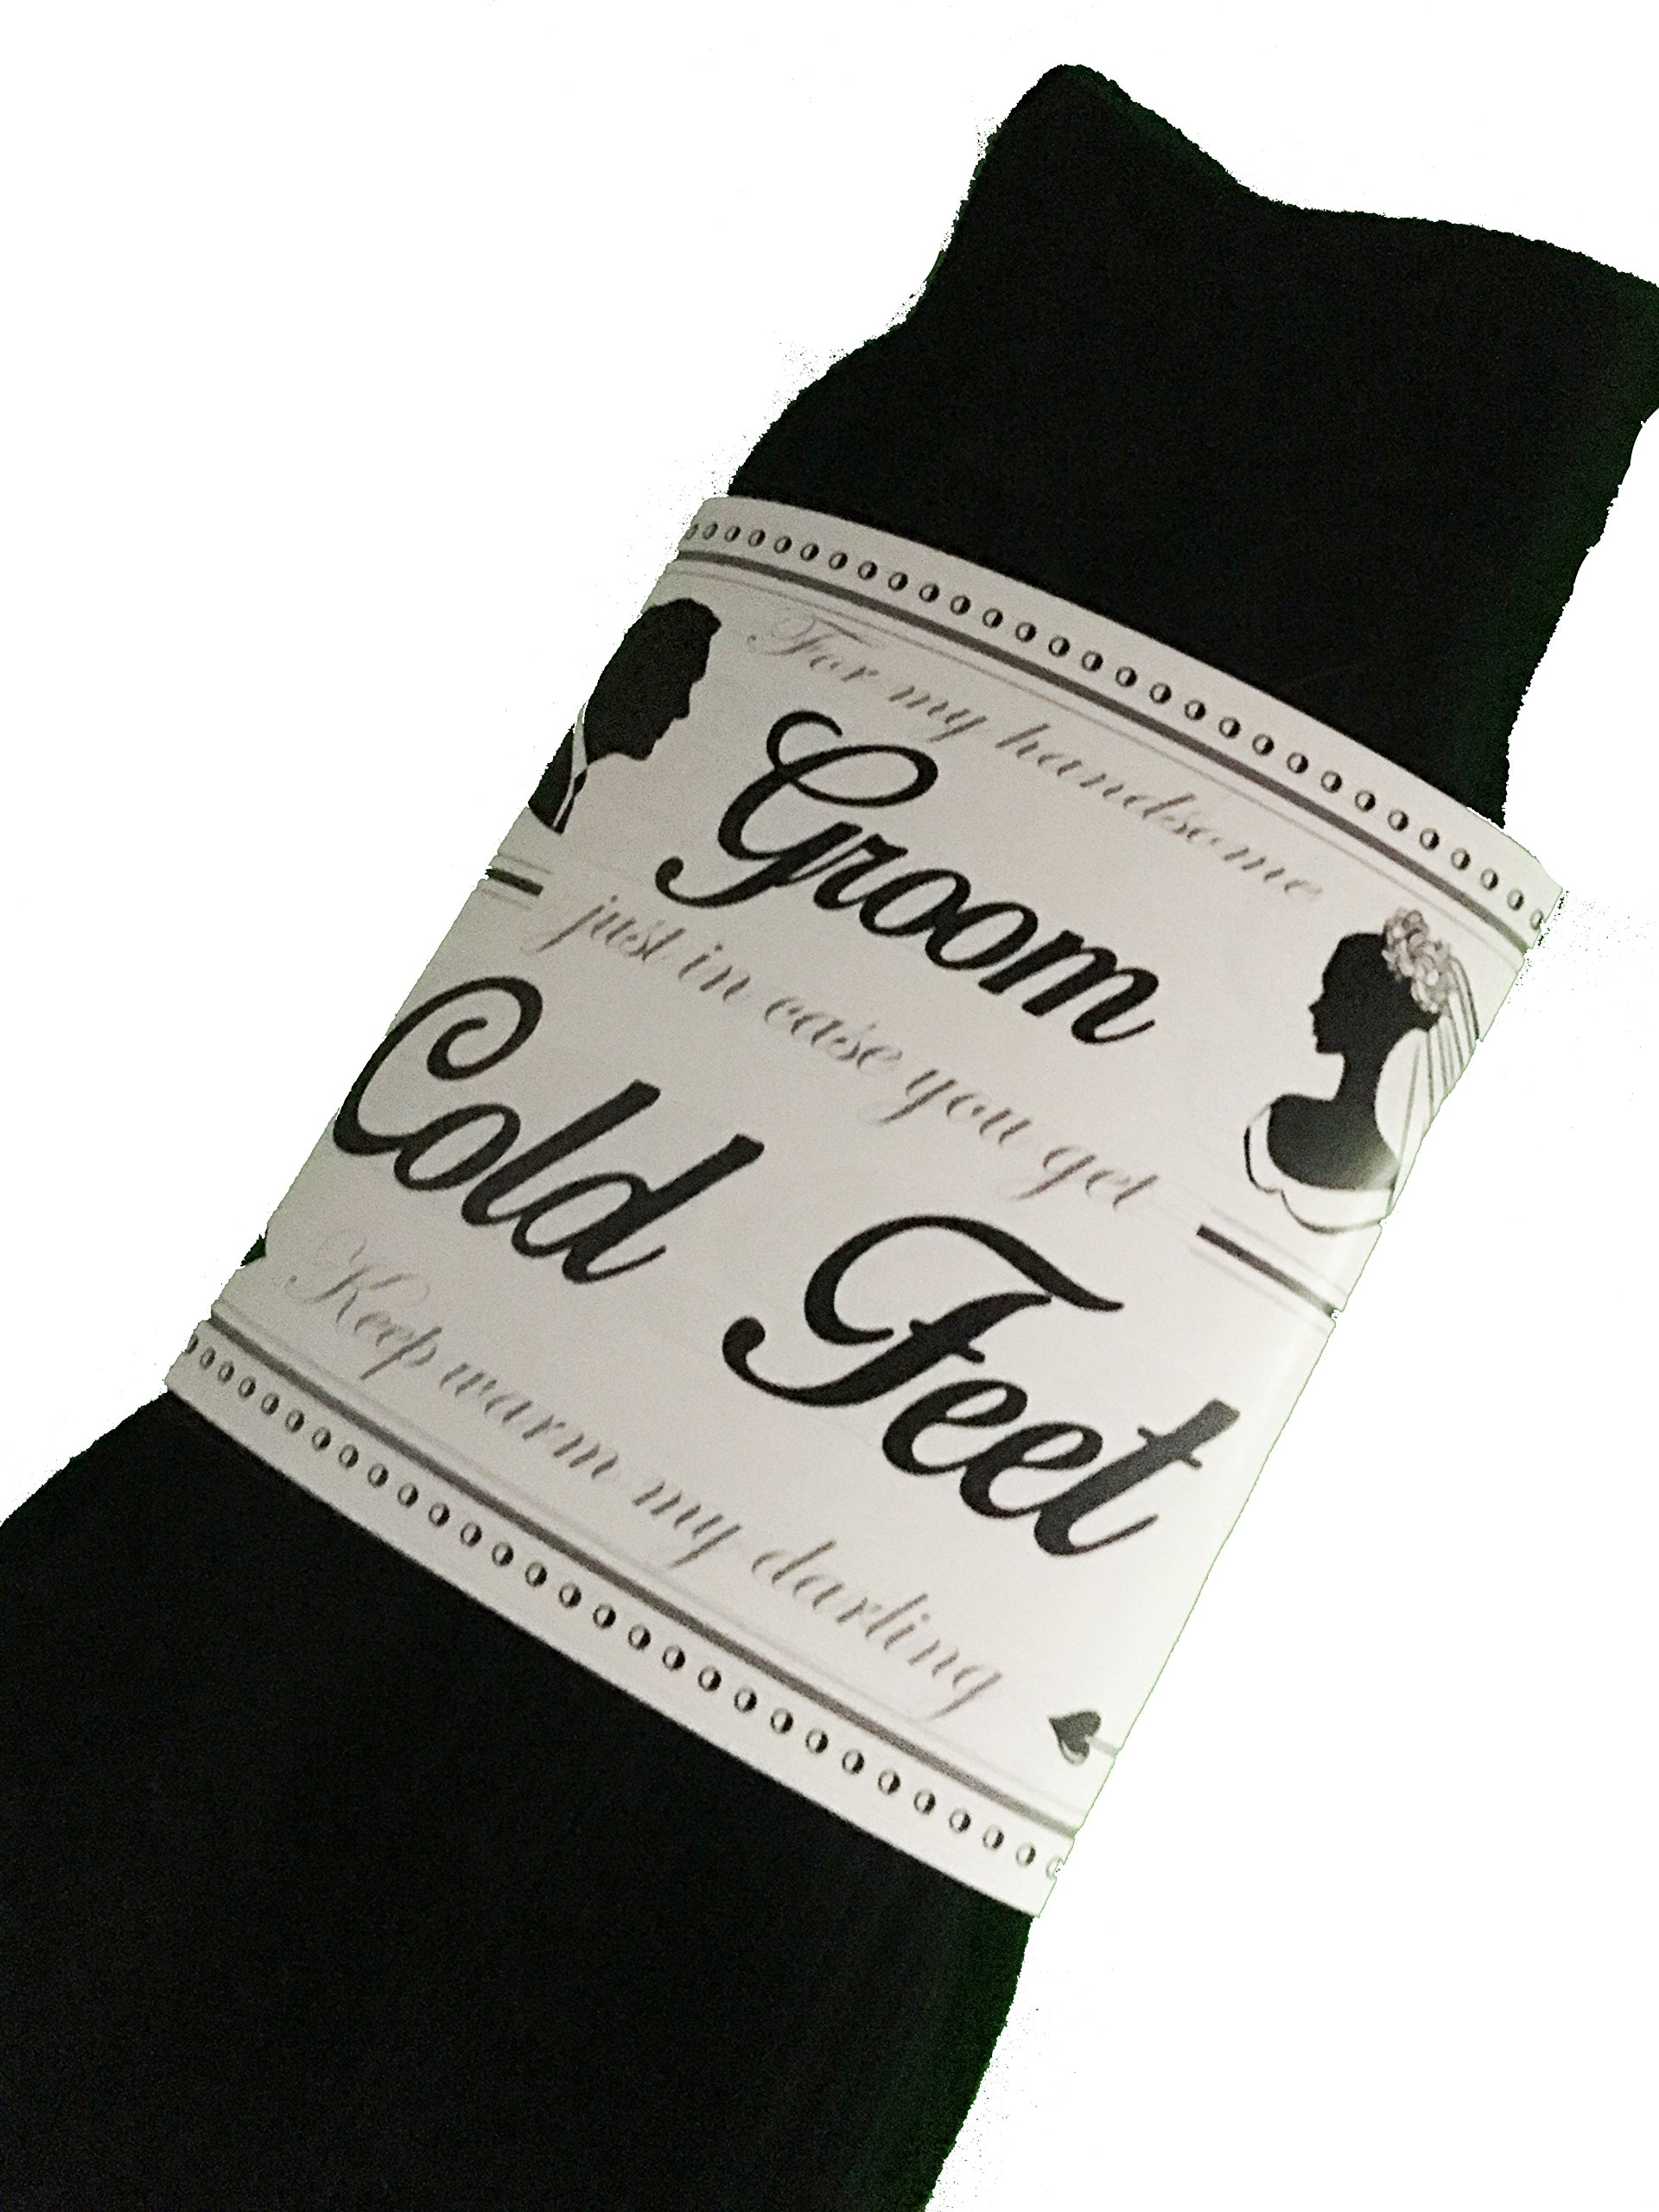 Cold Feet Socks for a Groom from the Bride by Wedding Tokens